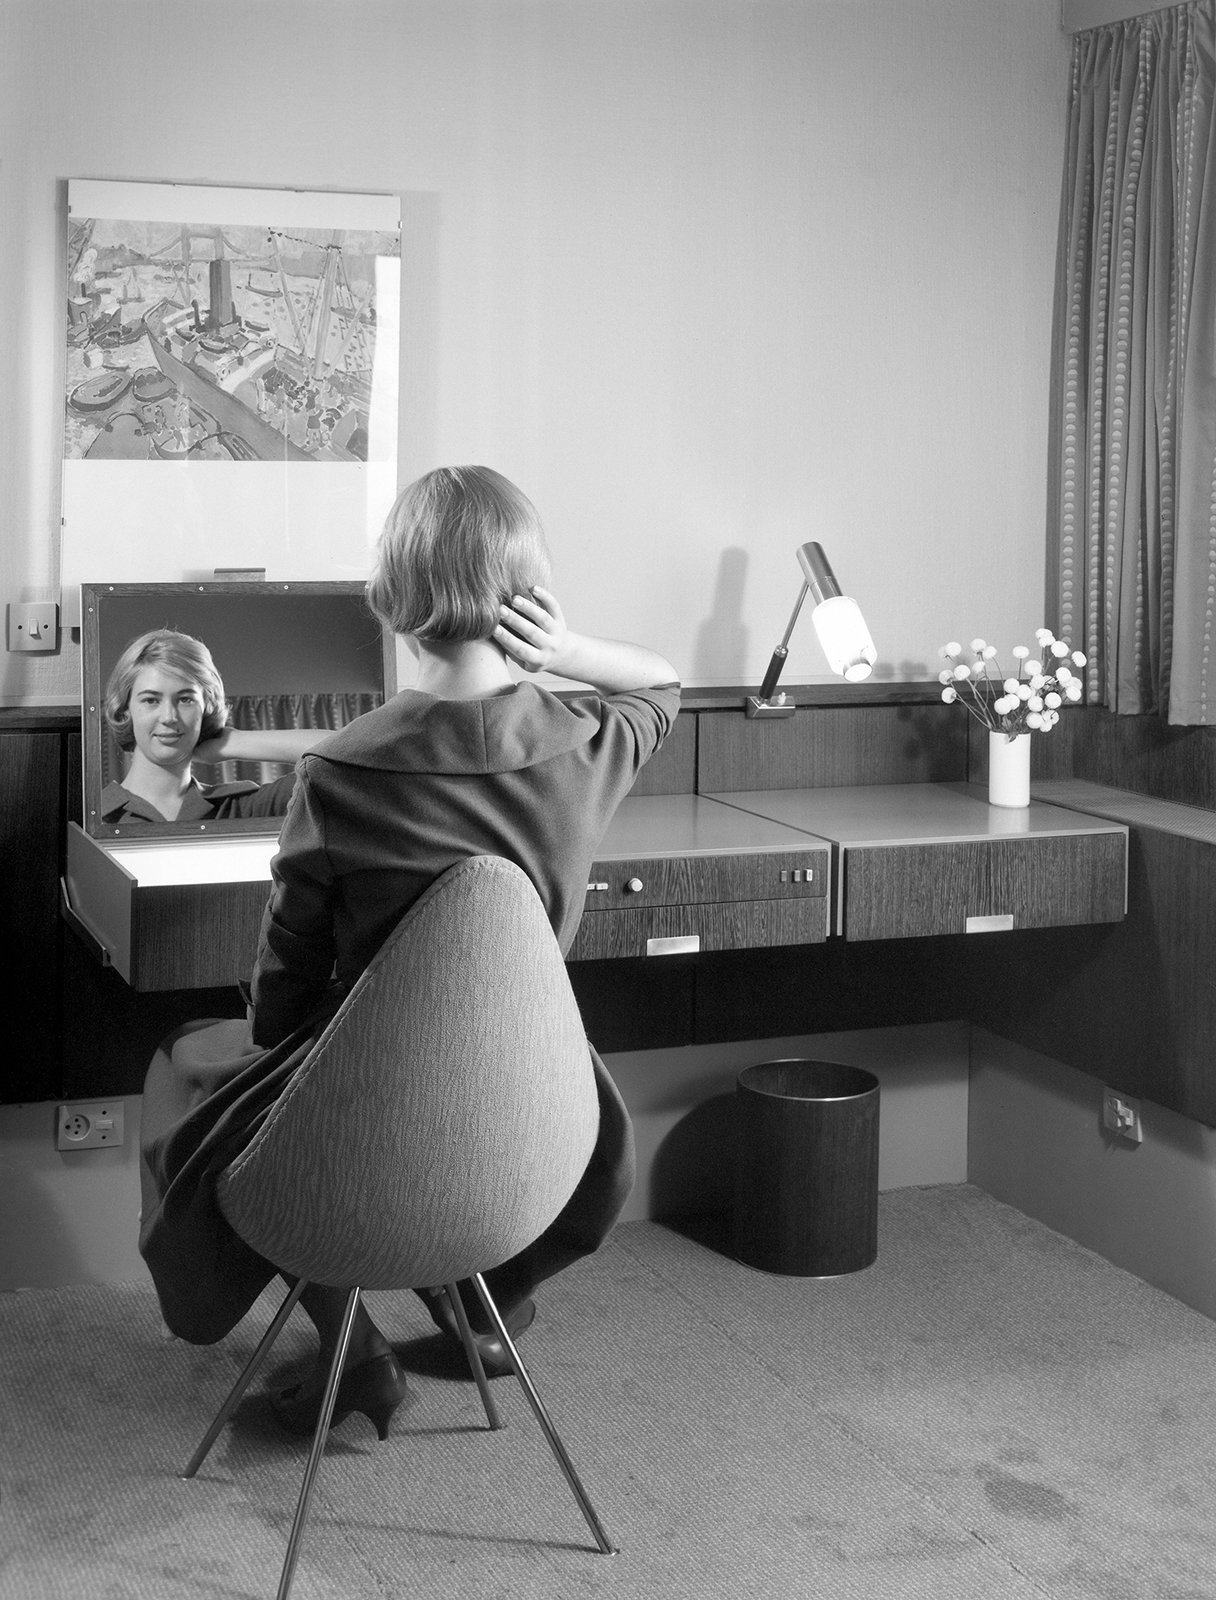 Arne Jacobsen designed nearly every element in the hotel, including the built-ins, textiles, and accessories. In addition to furnishing the rooms with existing pieces from his portfolio, Jacobsen created new items for the hotel, like the Drop chair shown in this archival photo.  Photo 3 of 10 in Jaime Hayon Reimagines a Room in an Iconic Copenhagen Hotel